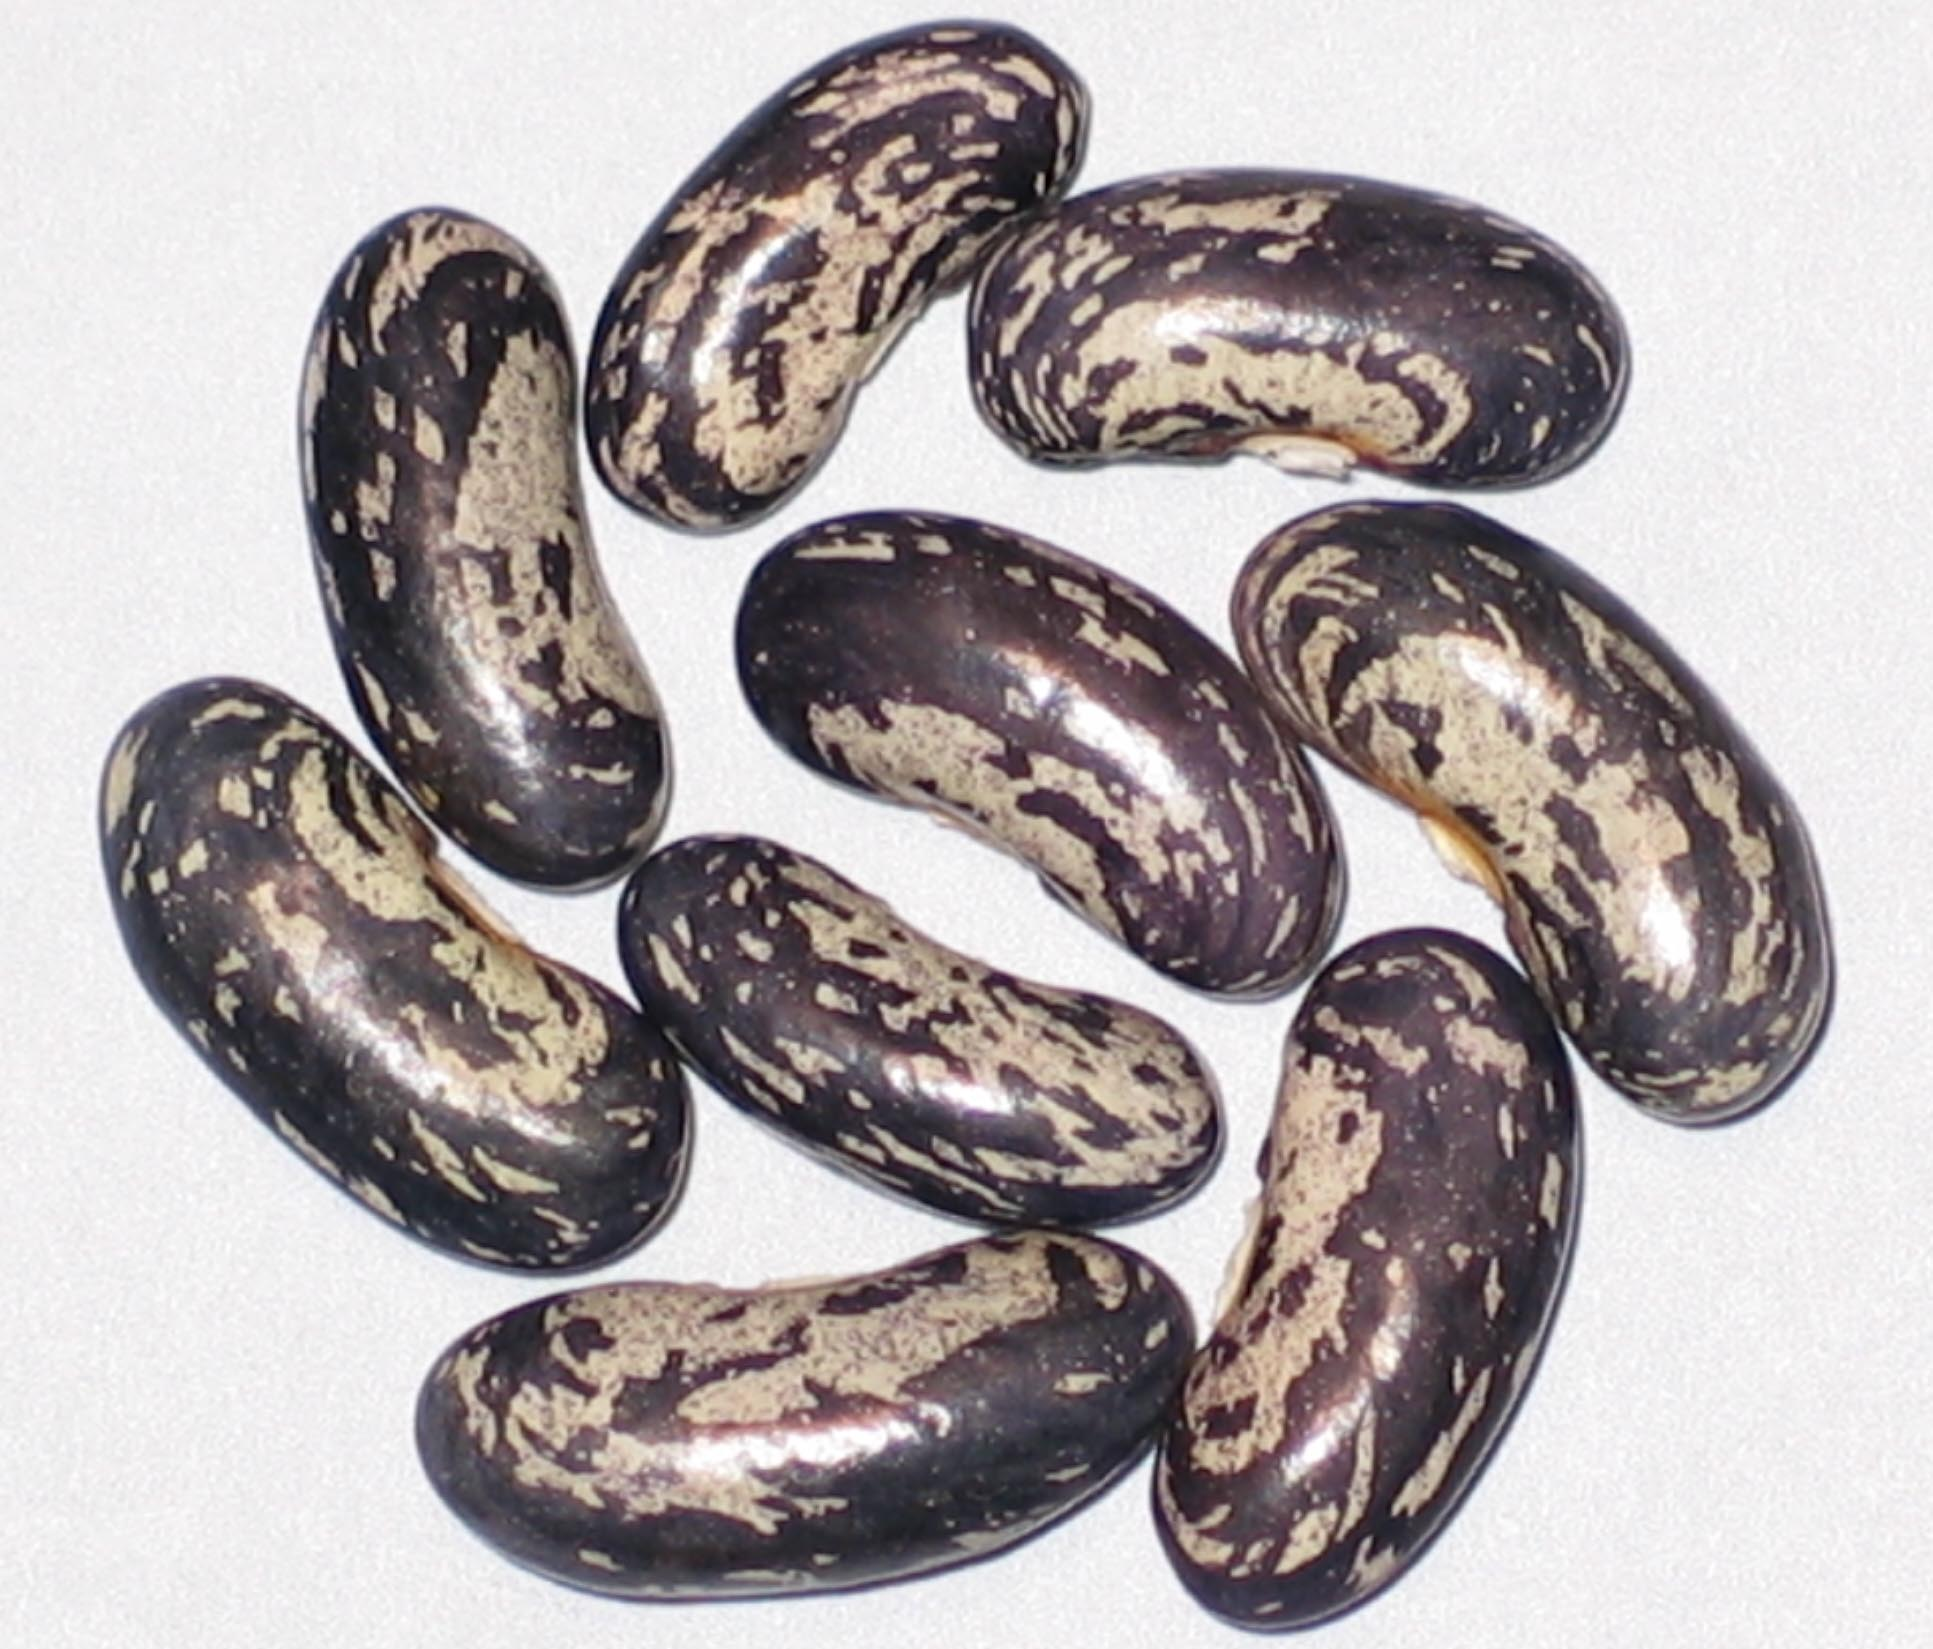 image of Blue Jay beans